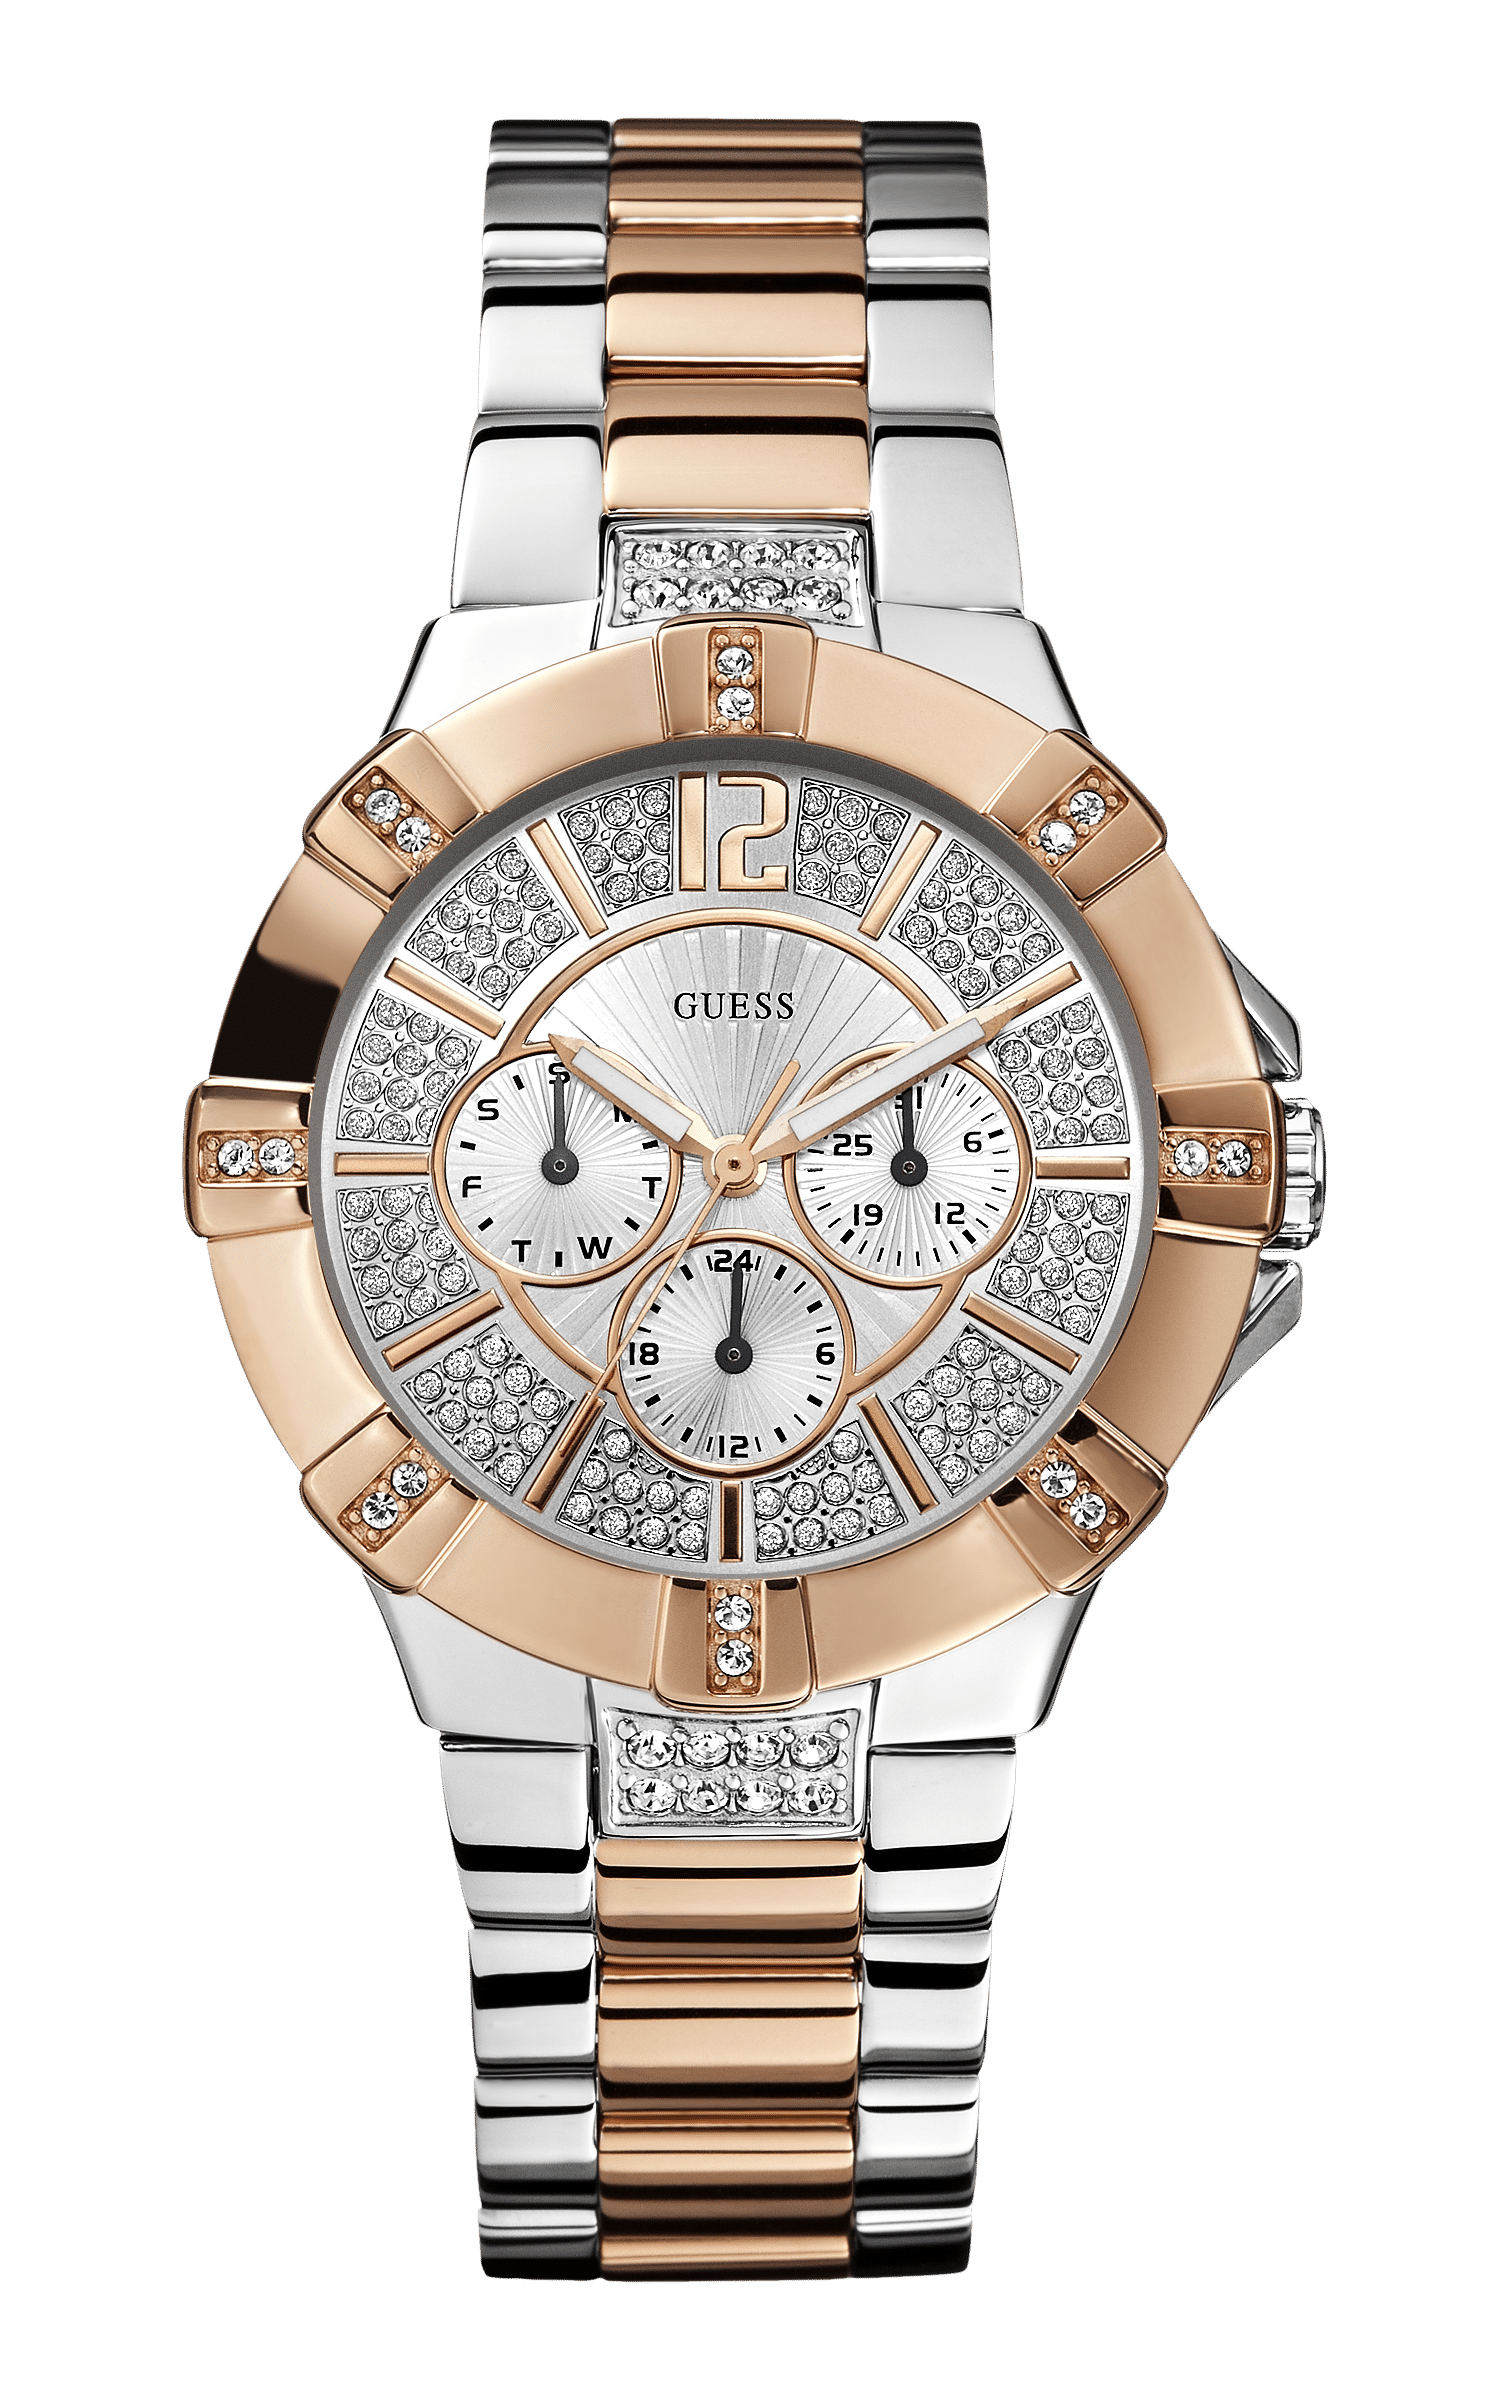 Guess Silver Tone-rose Gold Tone Vista Watch - Guess Watches